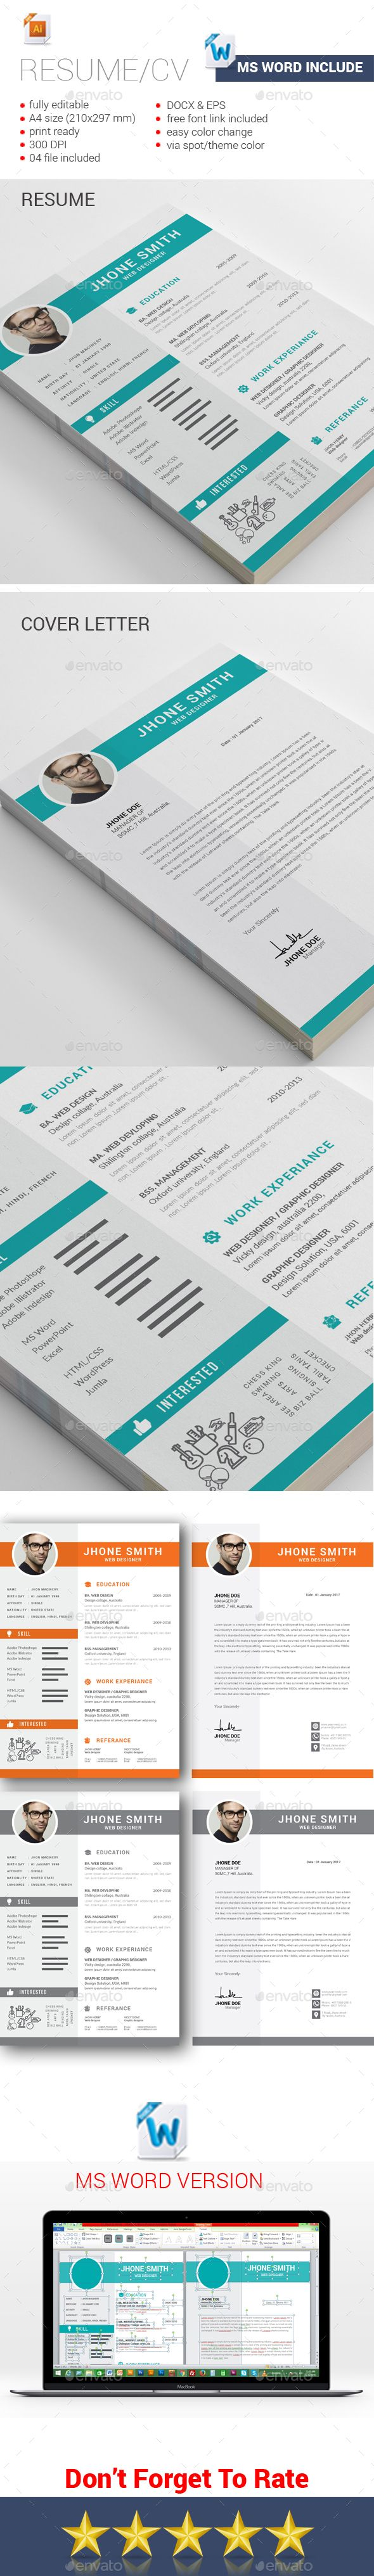 Best Printable Design Images On   Resume Design